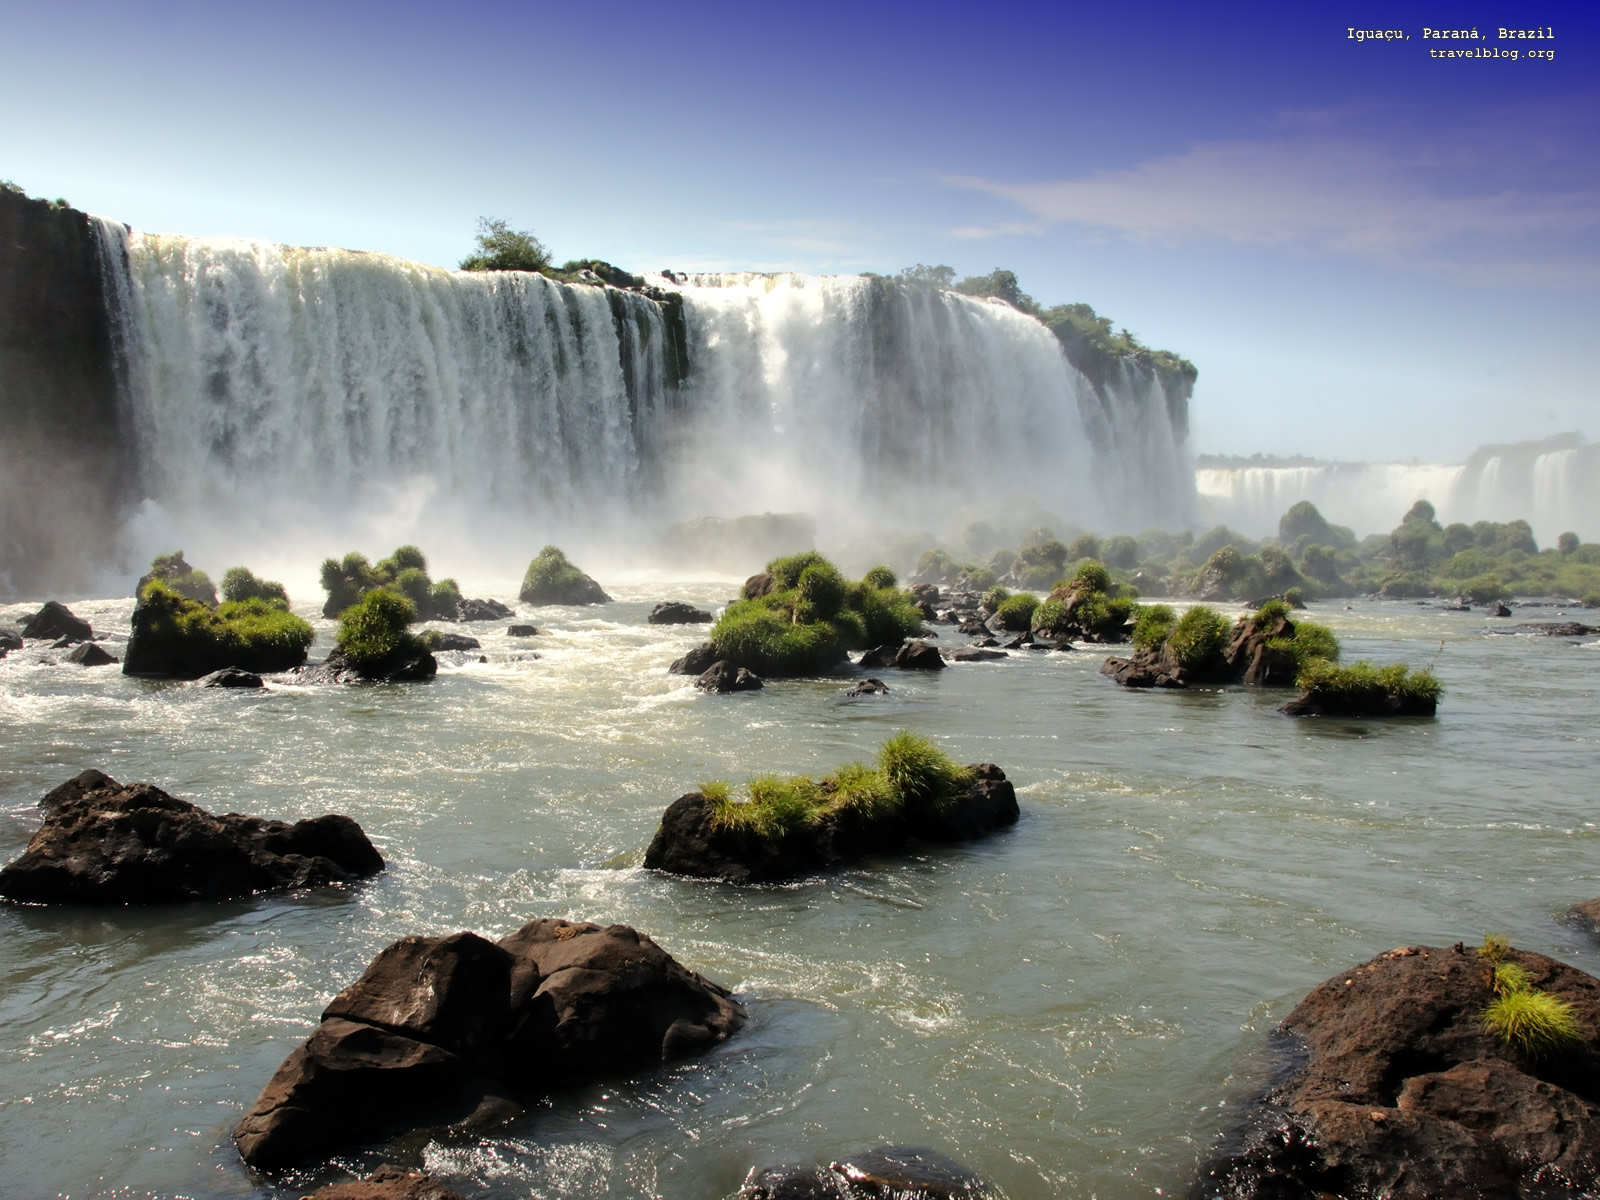 http://2.bp.blogspot.com/-SH7w5sM_vUU/TZMKt6NRAOI/AAAAAAAAAB8/f_FYFCYo9jM/s1600/waterfall_desktop_background-1600x1200.jpg